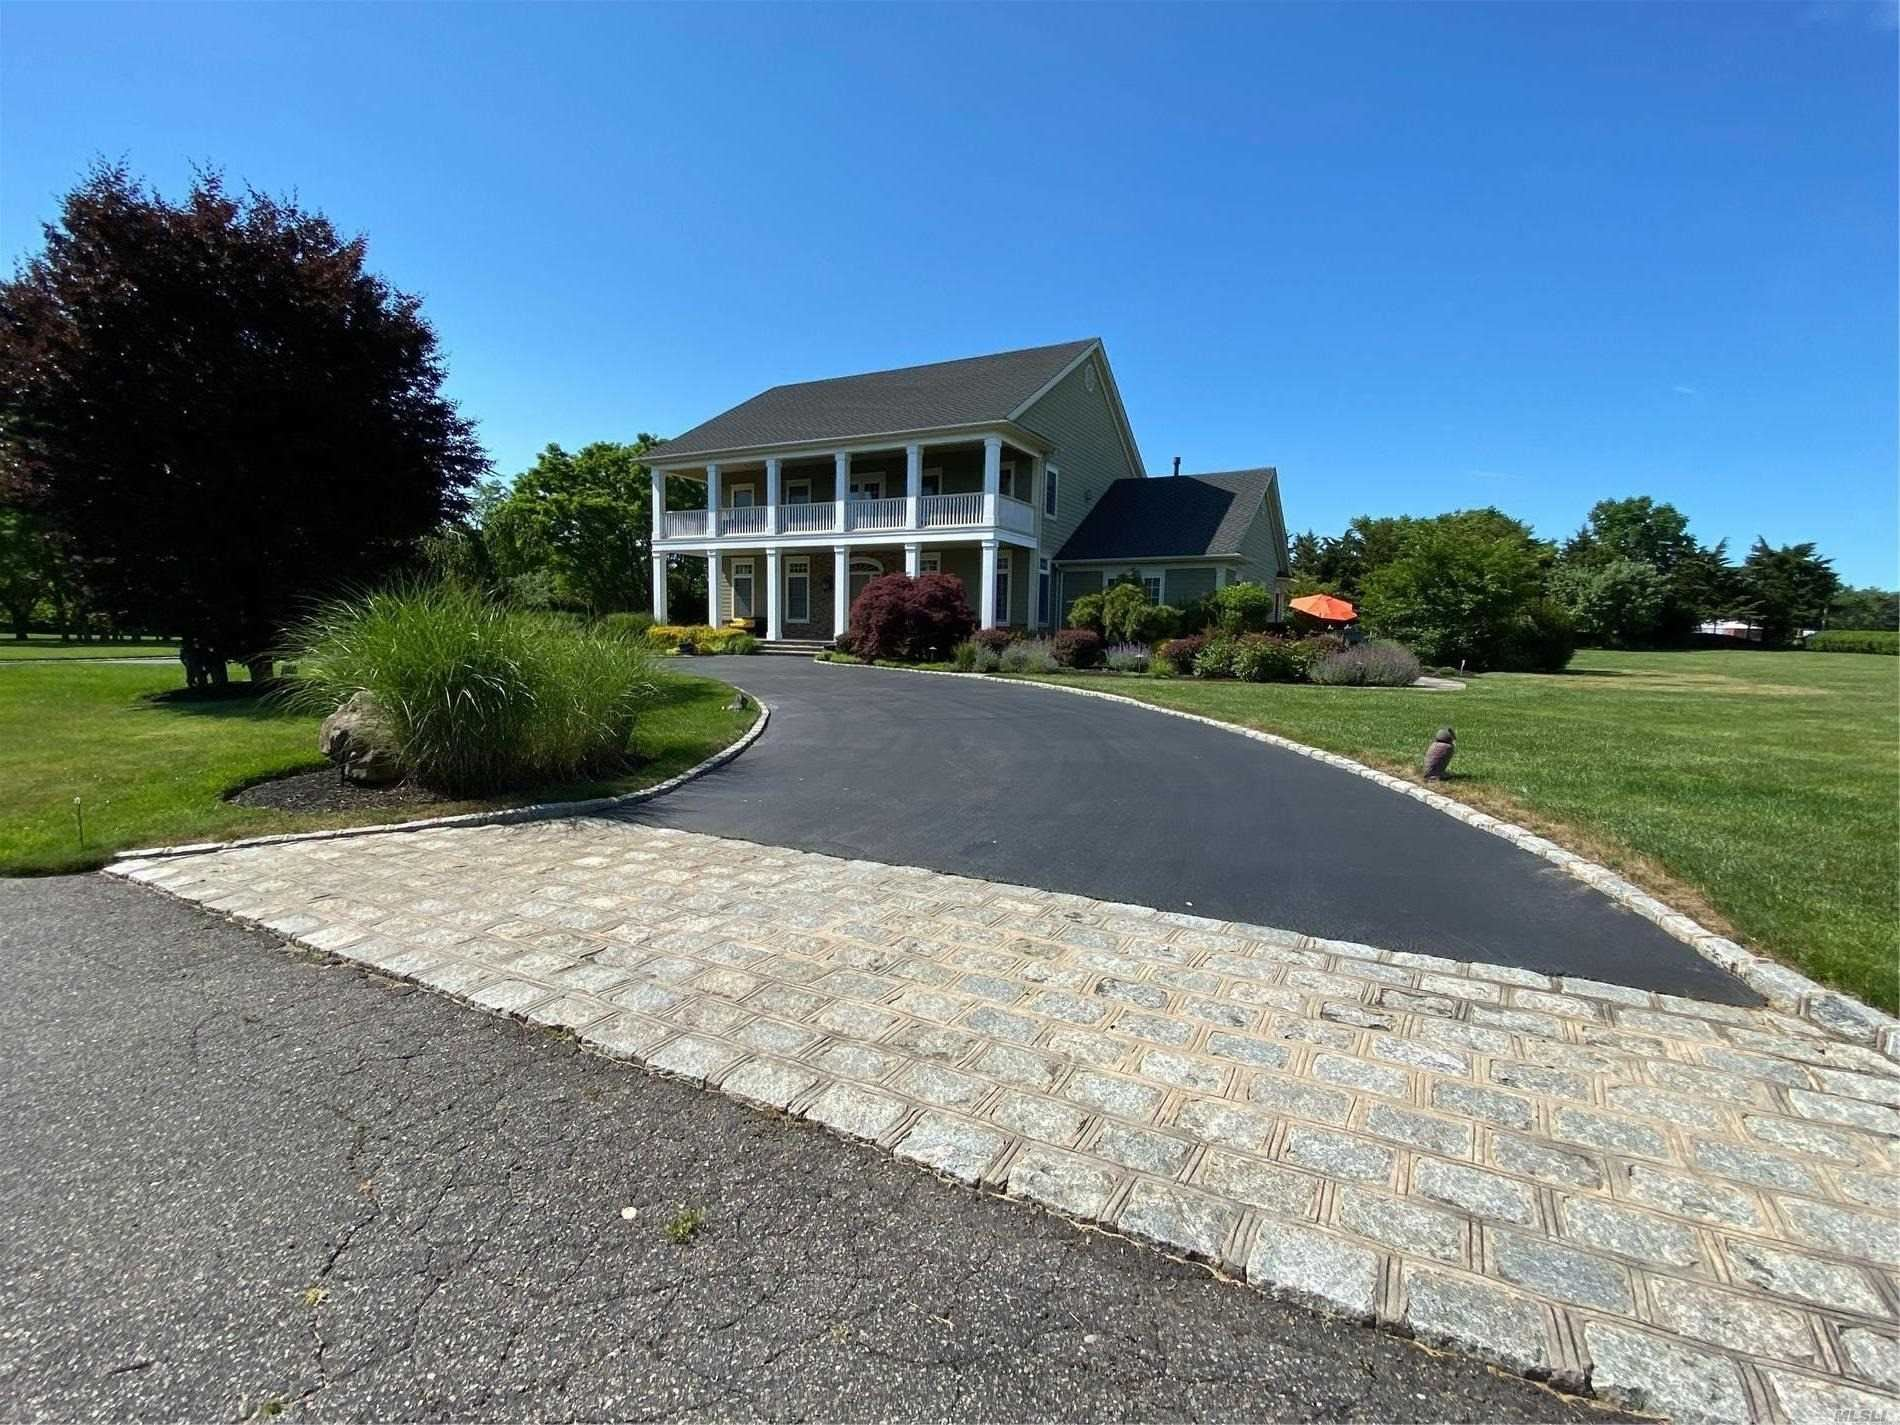 57856 (Private) Main Road, Southold, NY 11971 - MLS#: 3224249